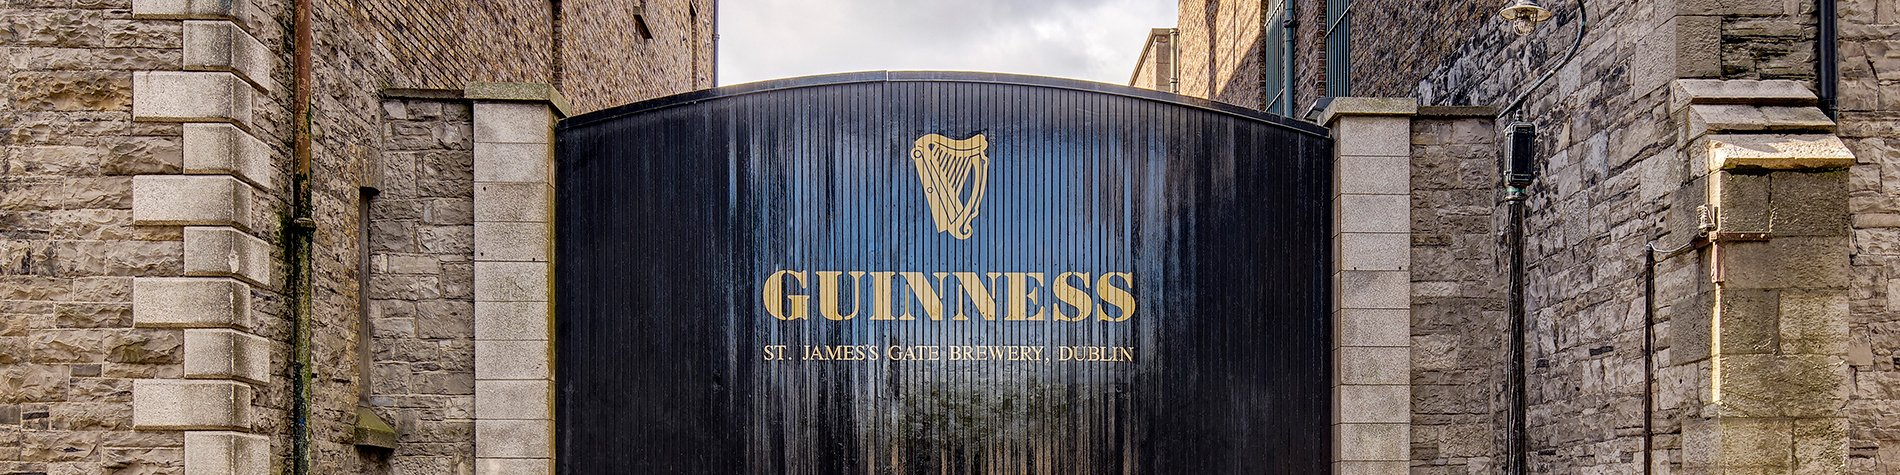 Main Gates to Guinness St James's Gate Brewery in Dublin